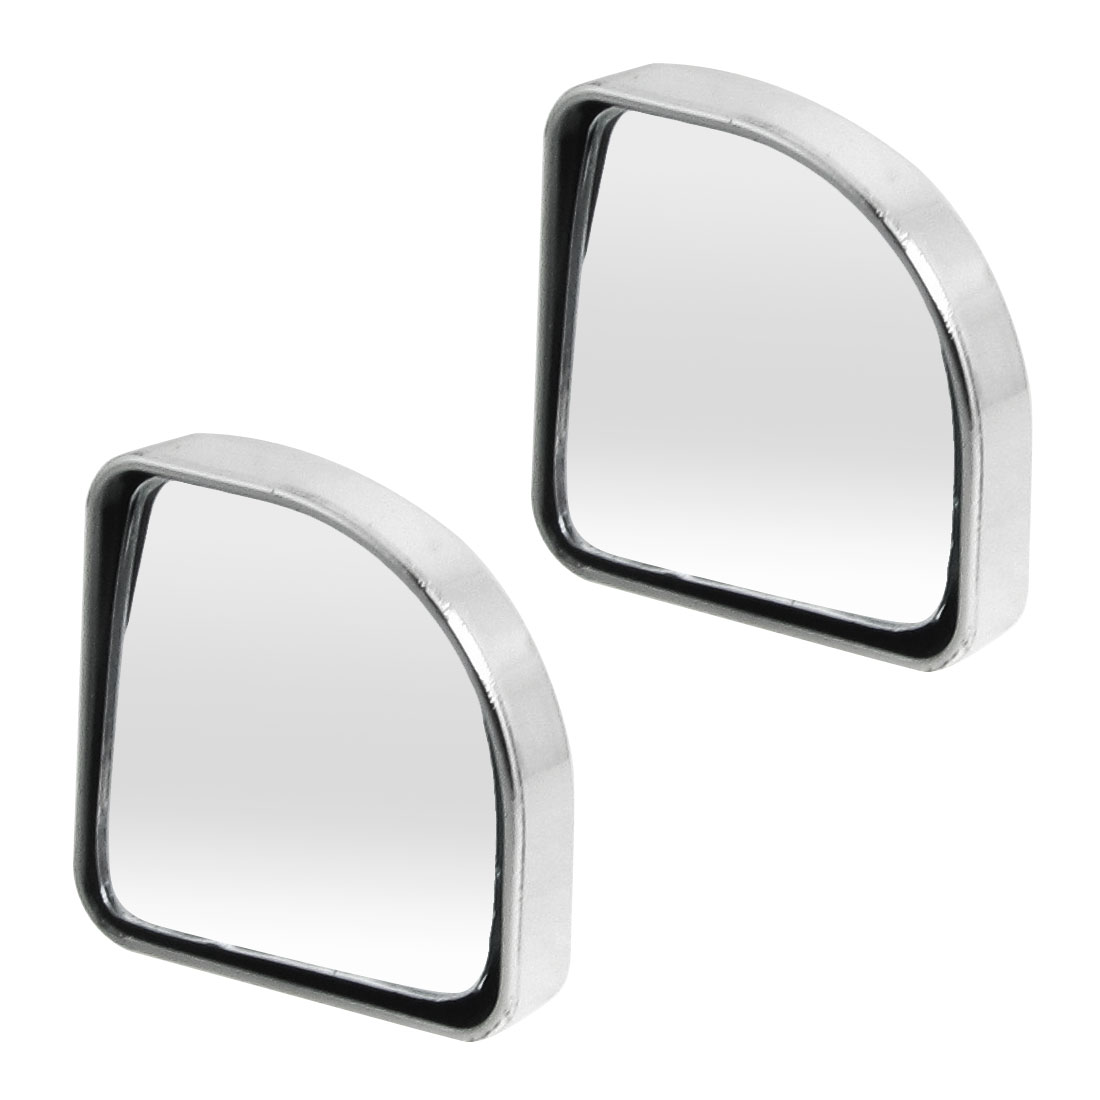 Car Self Adhesive Rear View Blind Spot Mirror Silver Tone 2 Pcs